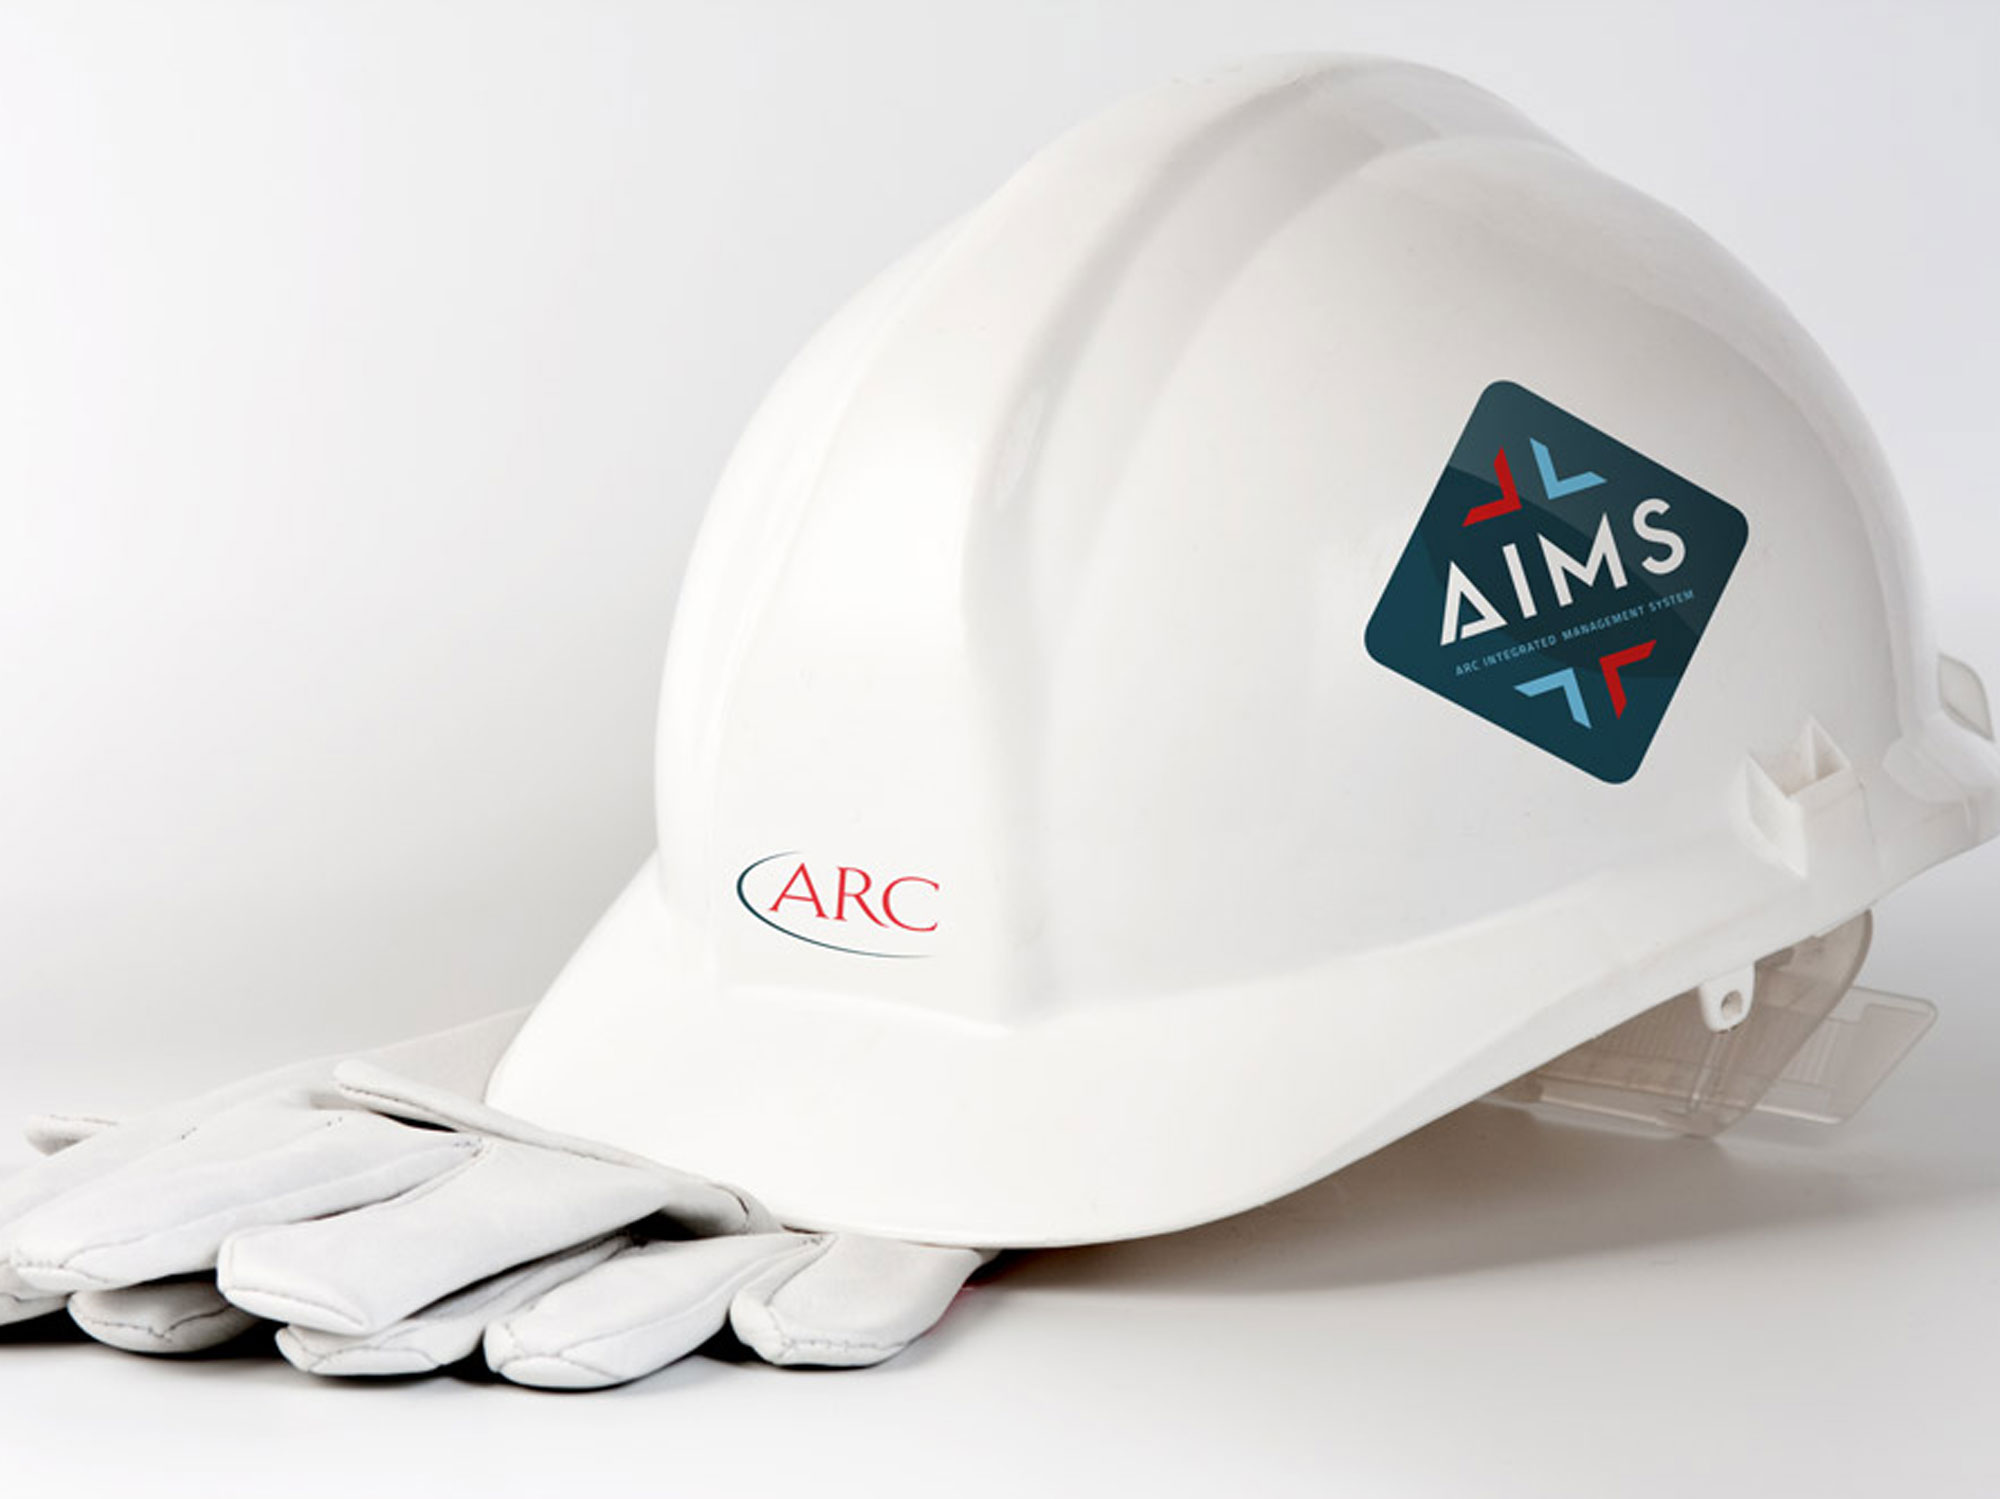 Hardhat decal for oil and gas field workers to wear after the launch of ARC Resources AIMS integrated management system app